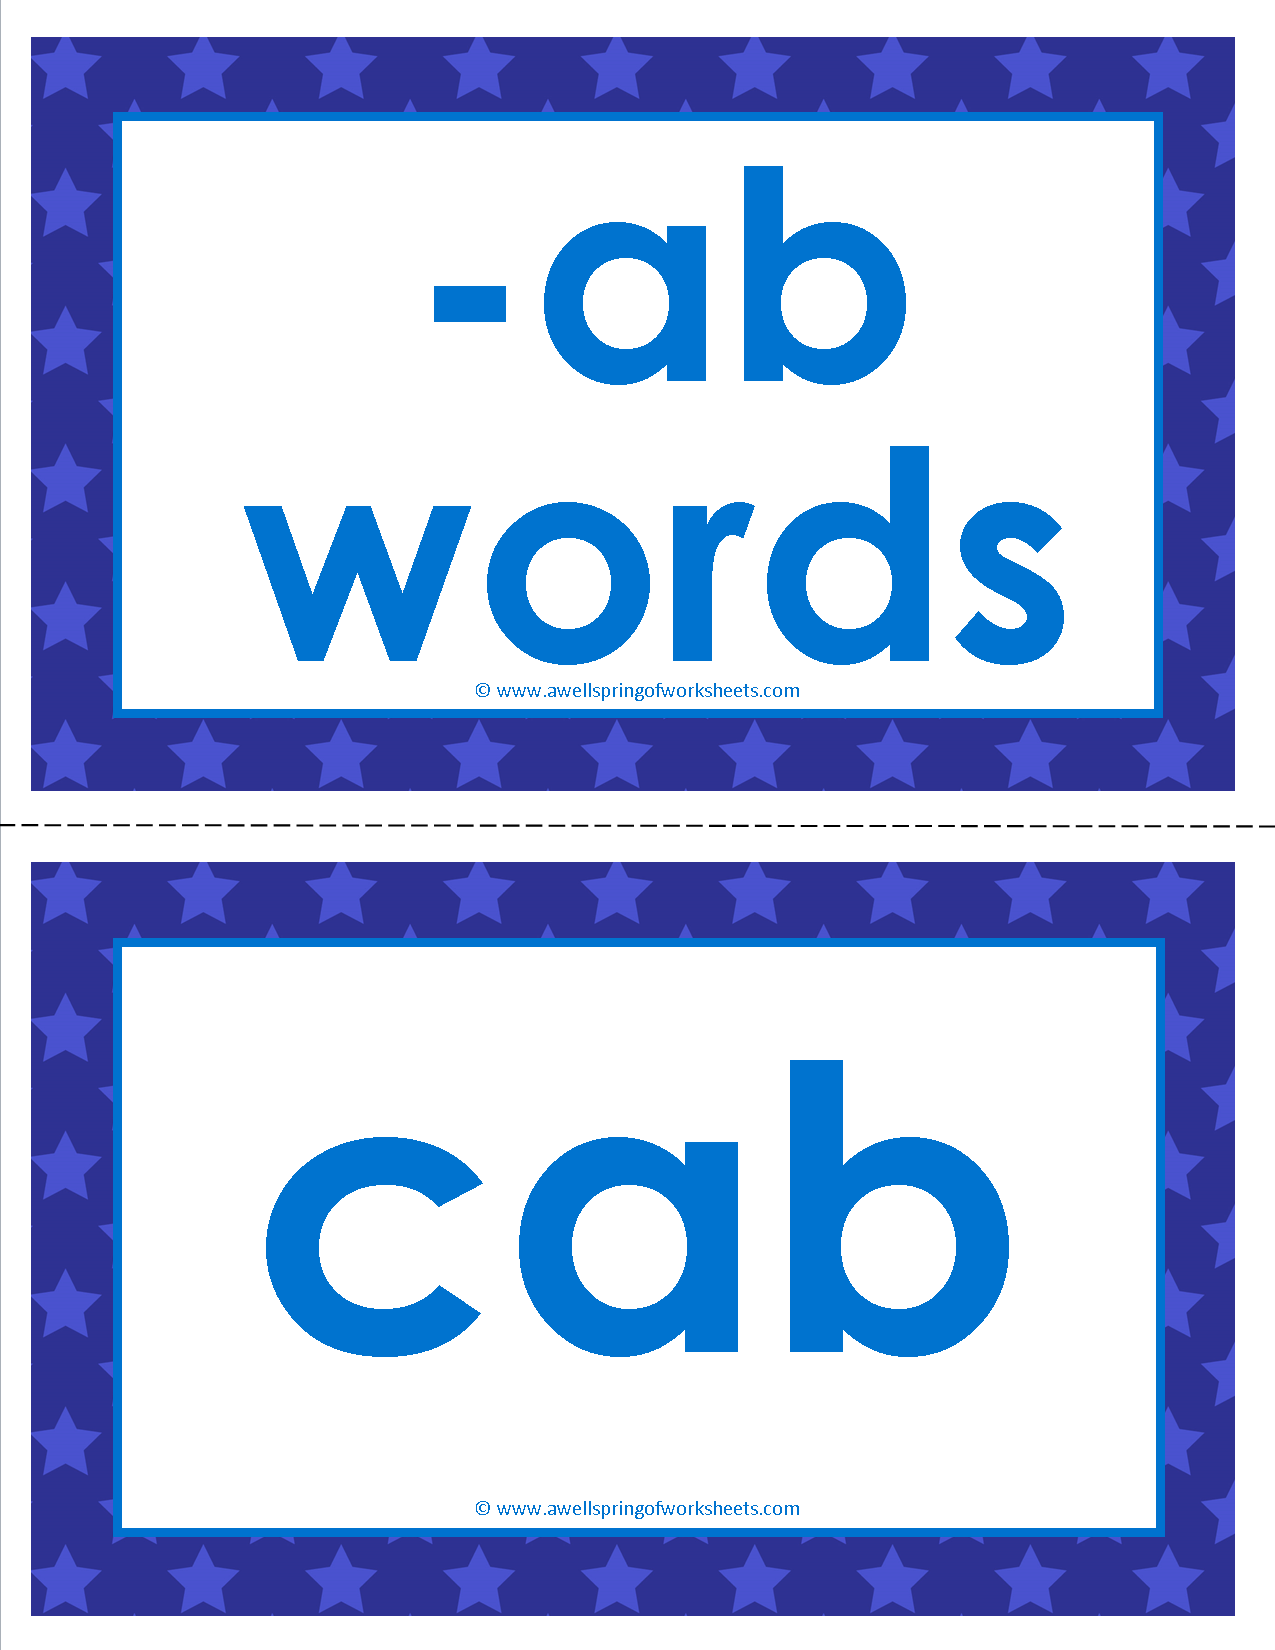 All cards on one card - Cvc Word Cards Bright And Colorful These 32 Sets Of Cvc Word Cards Have One Card Describing The Type Of Cards Ab Words For Example And Cards For All